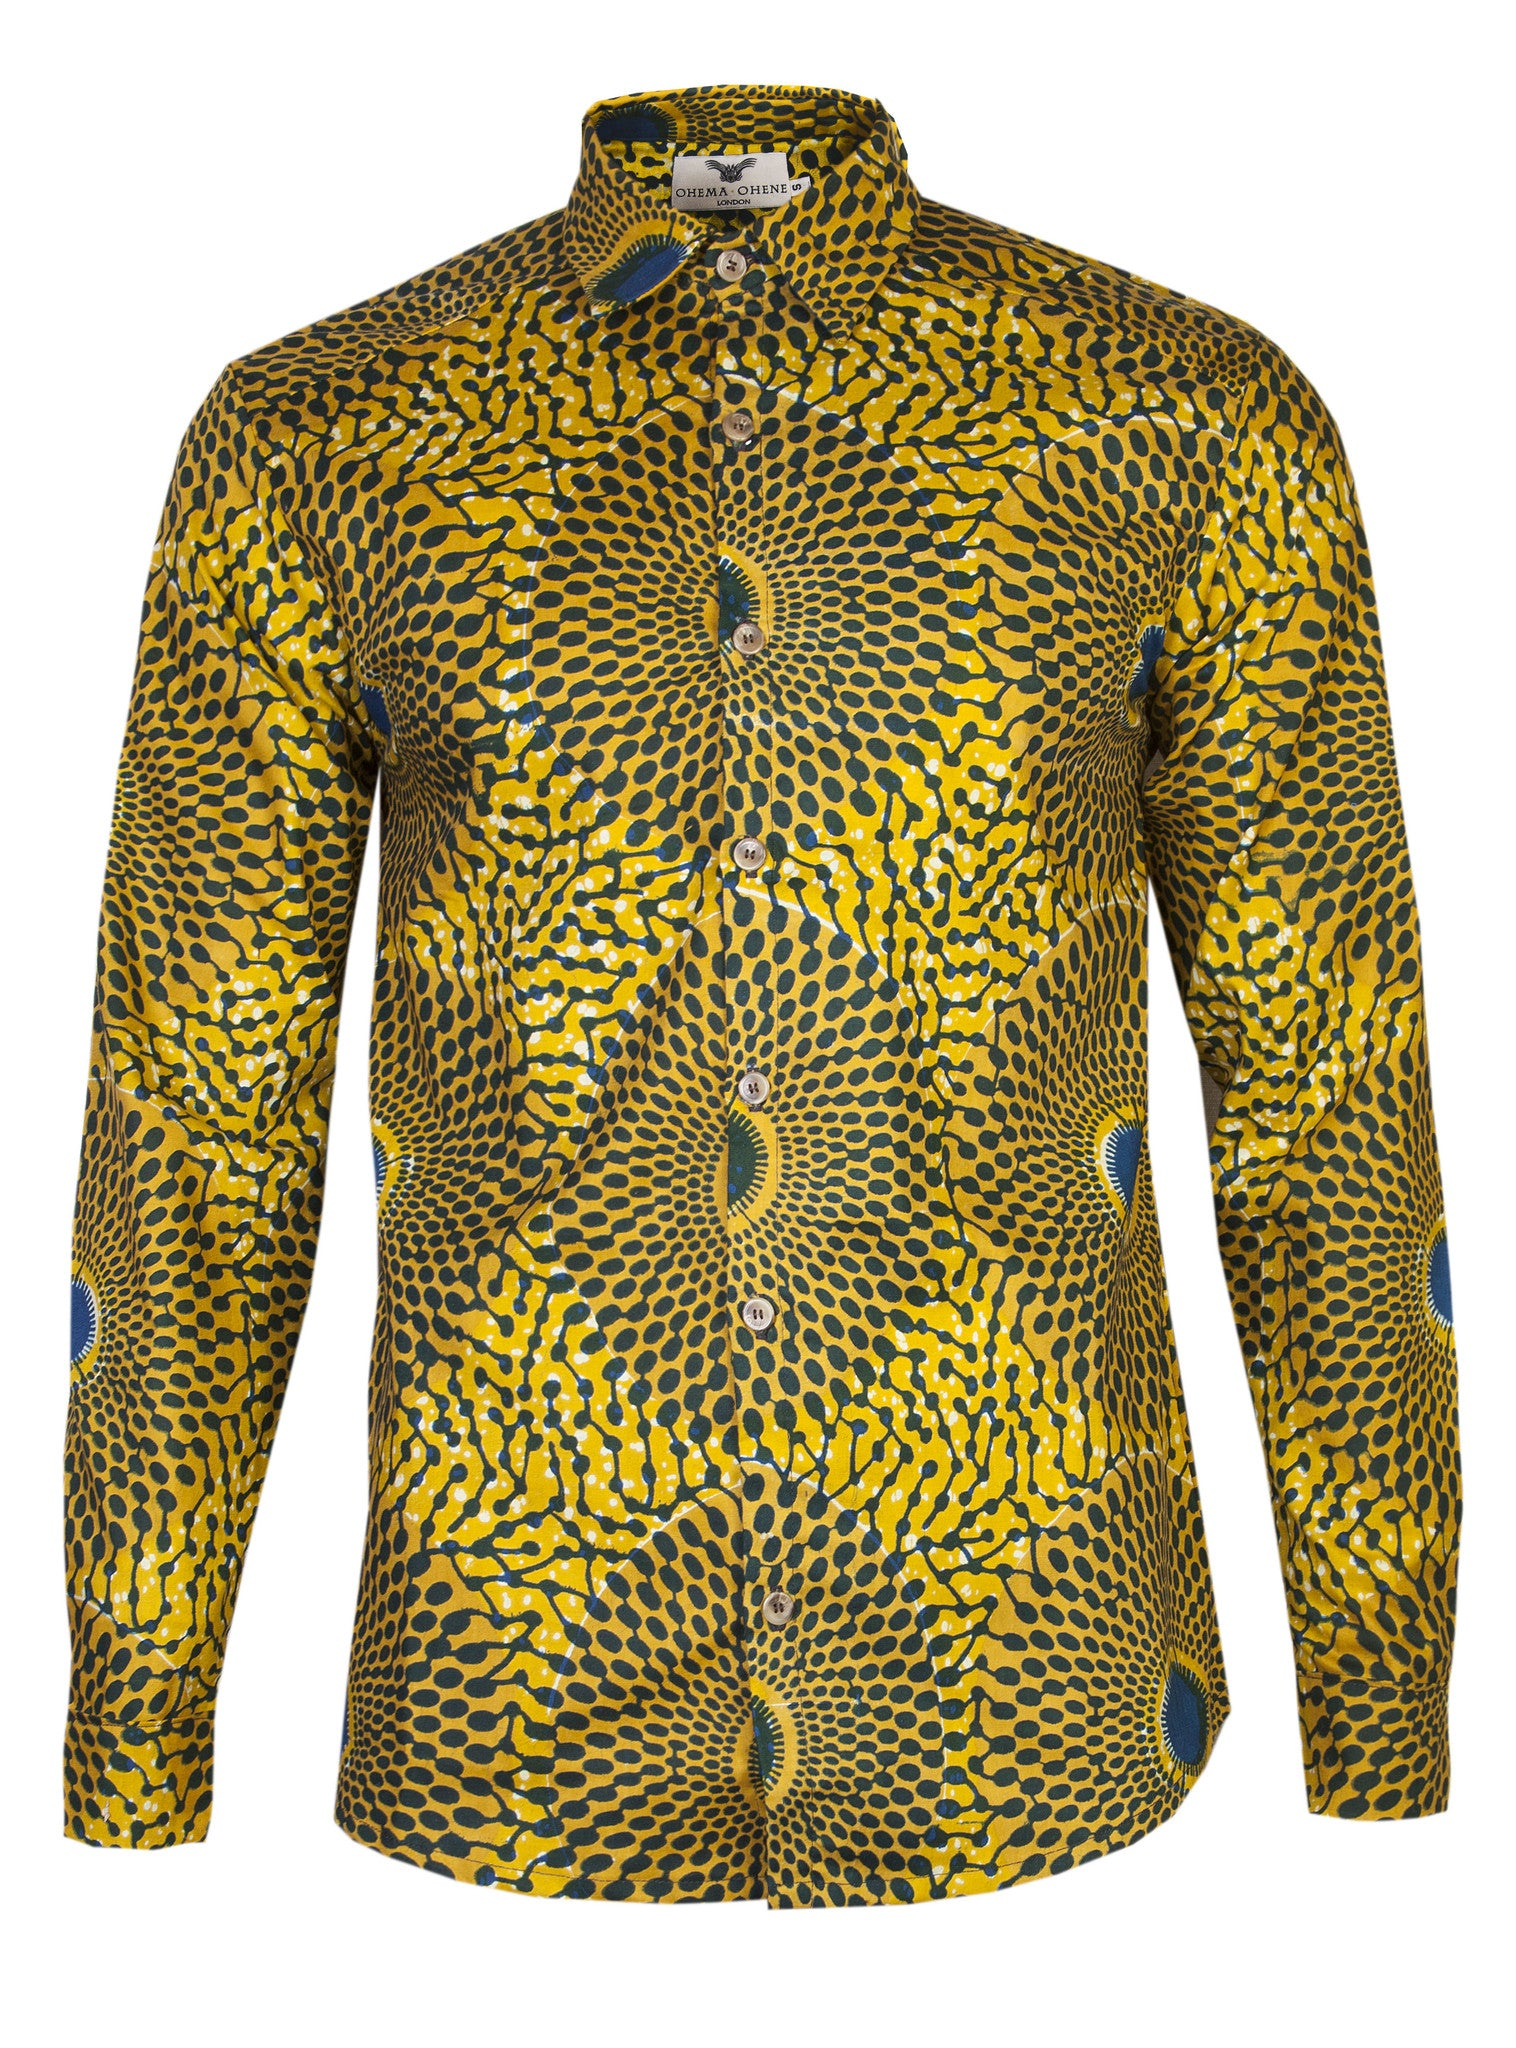 Long sleeve African print shirt Nsubra - OHEMA OHENE AFRICAN INSPIRED FASHION  - 1